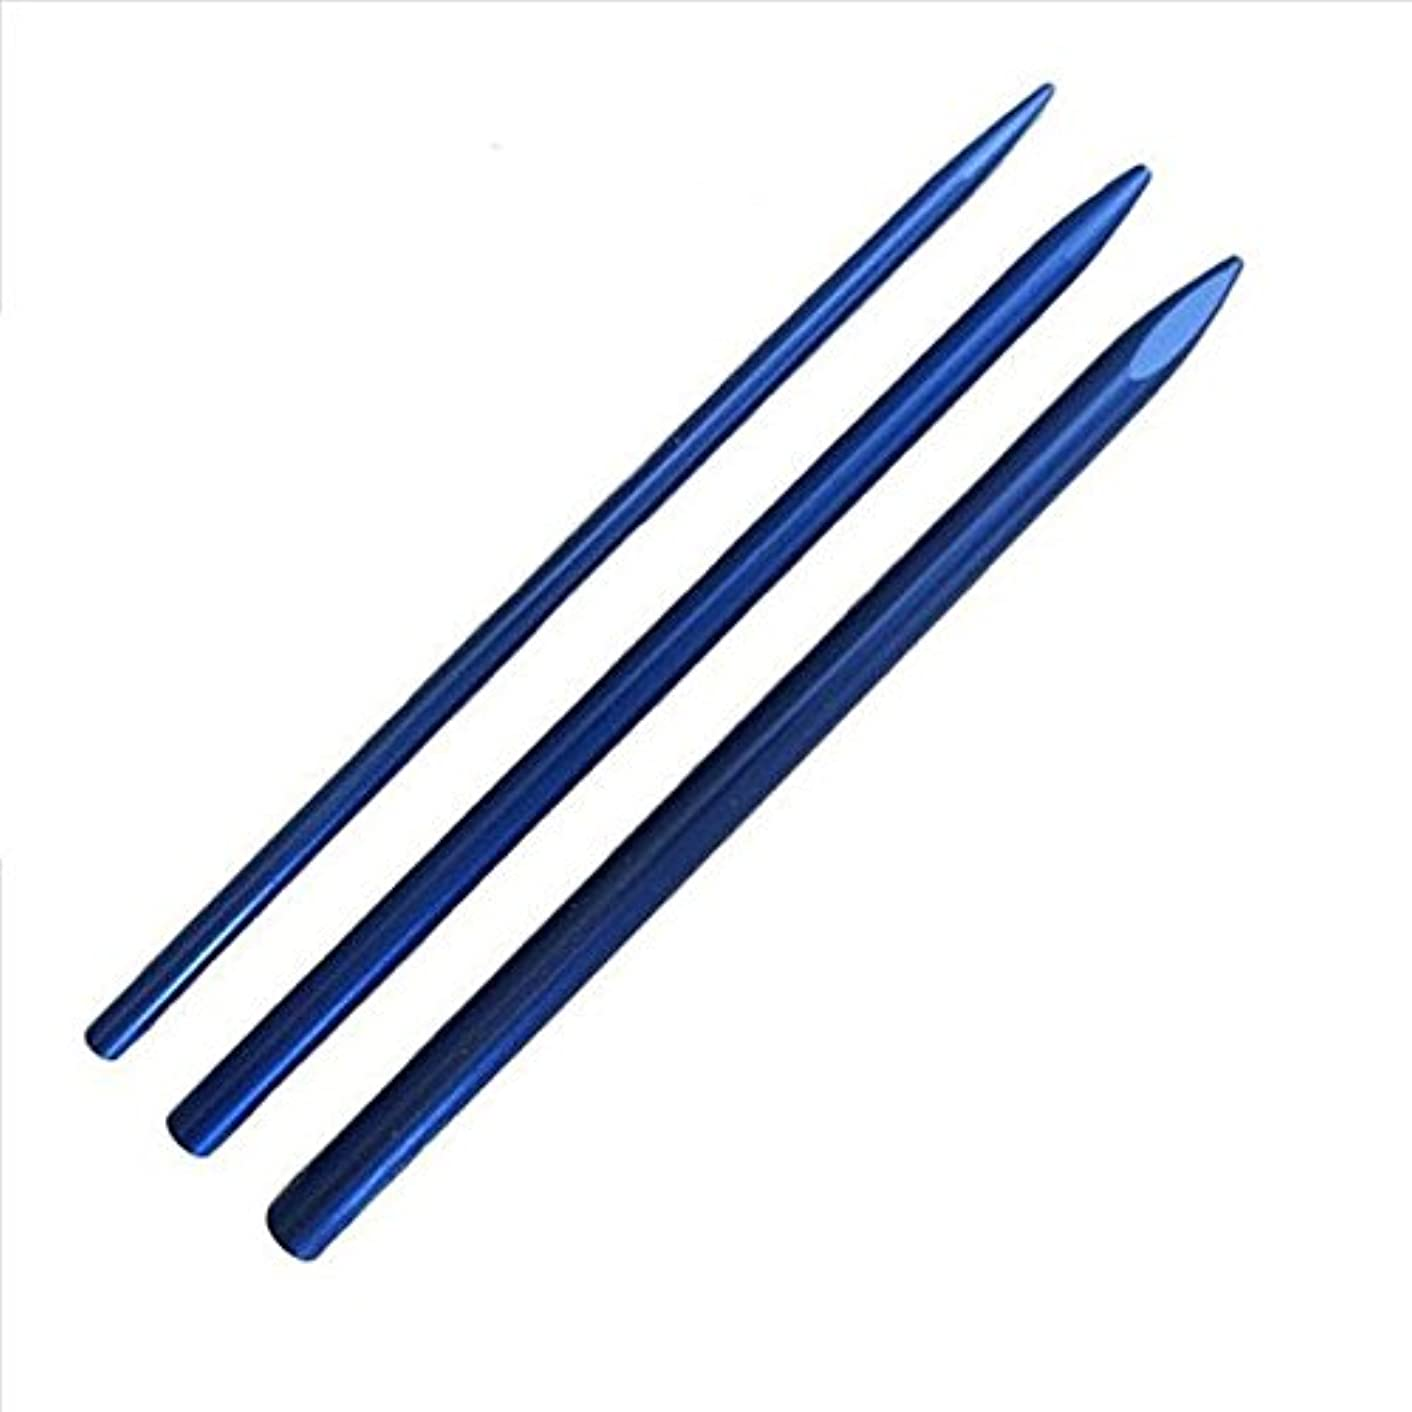 3 Different Size Paracord Lacing Needles by Jig Pro Shop (Blue)